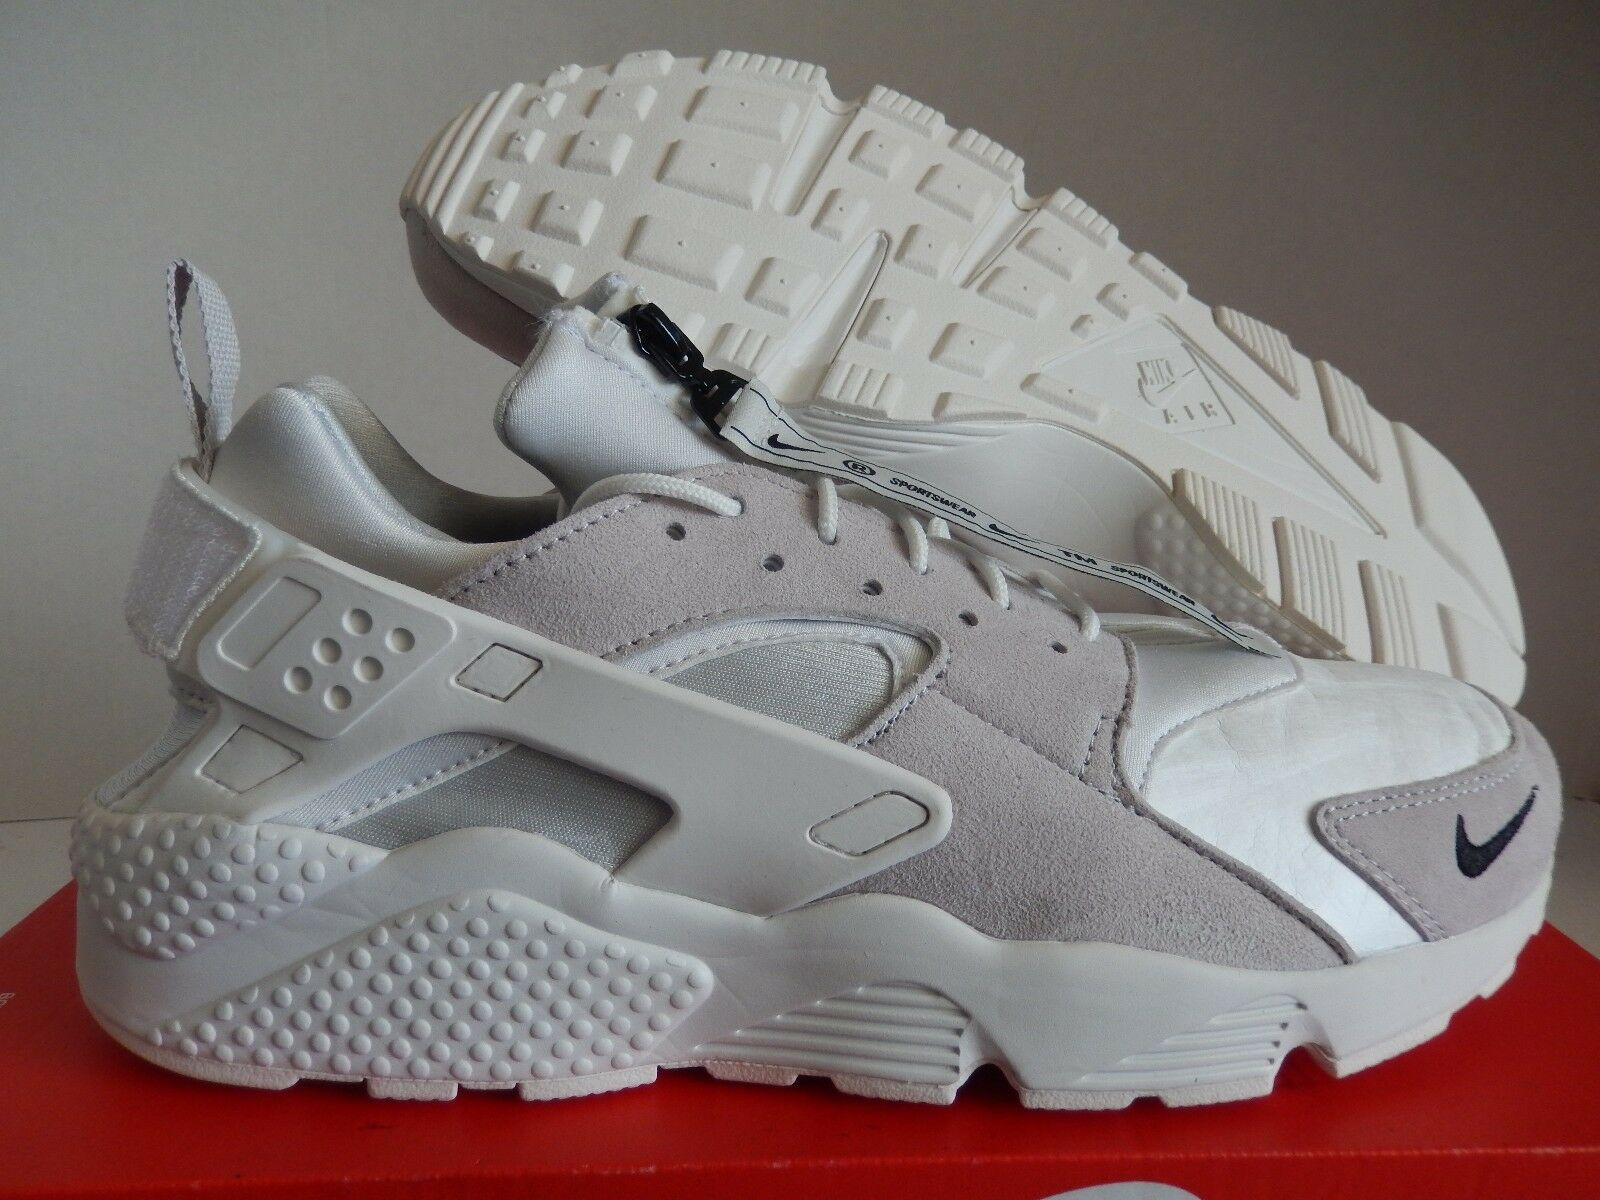 eae351e8d0a 2018 Nike Air Huarache Run as QS Sz 9 All Star 90 10 off White ...